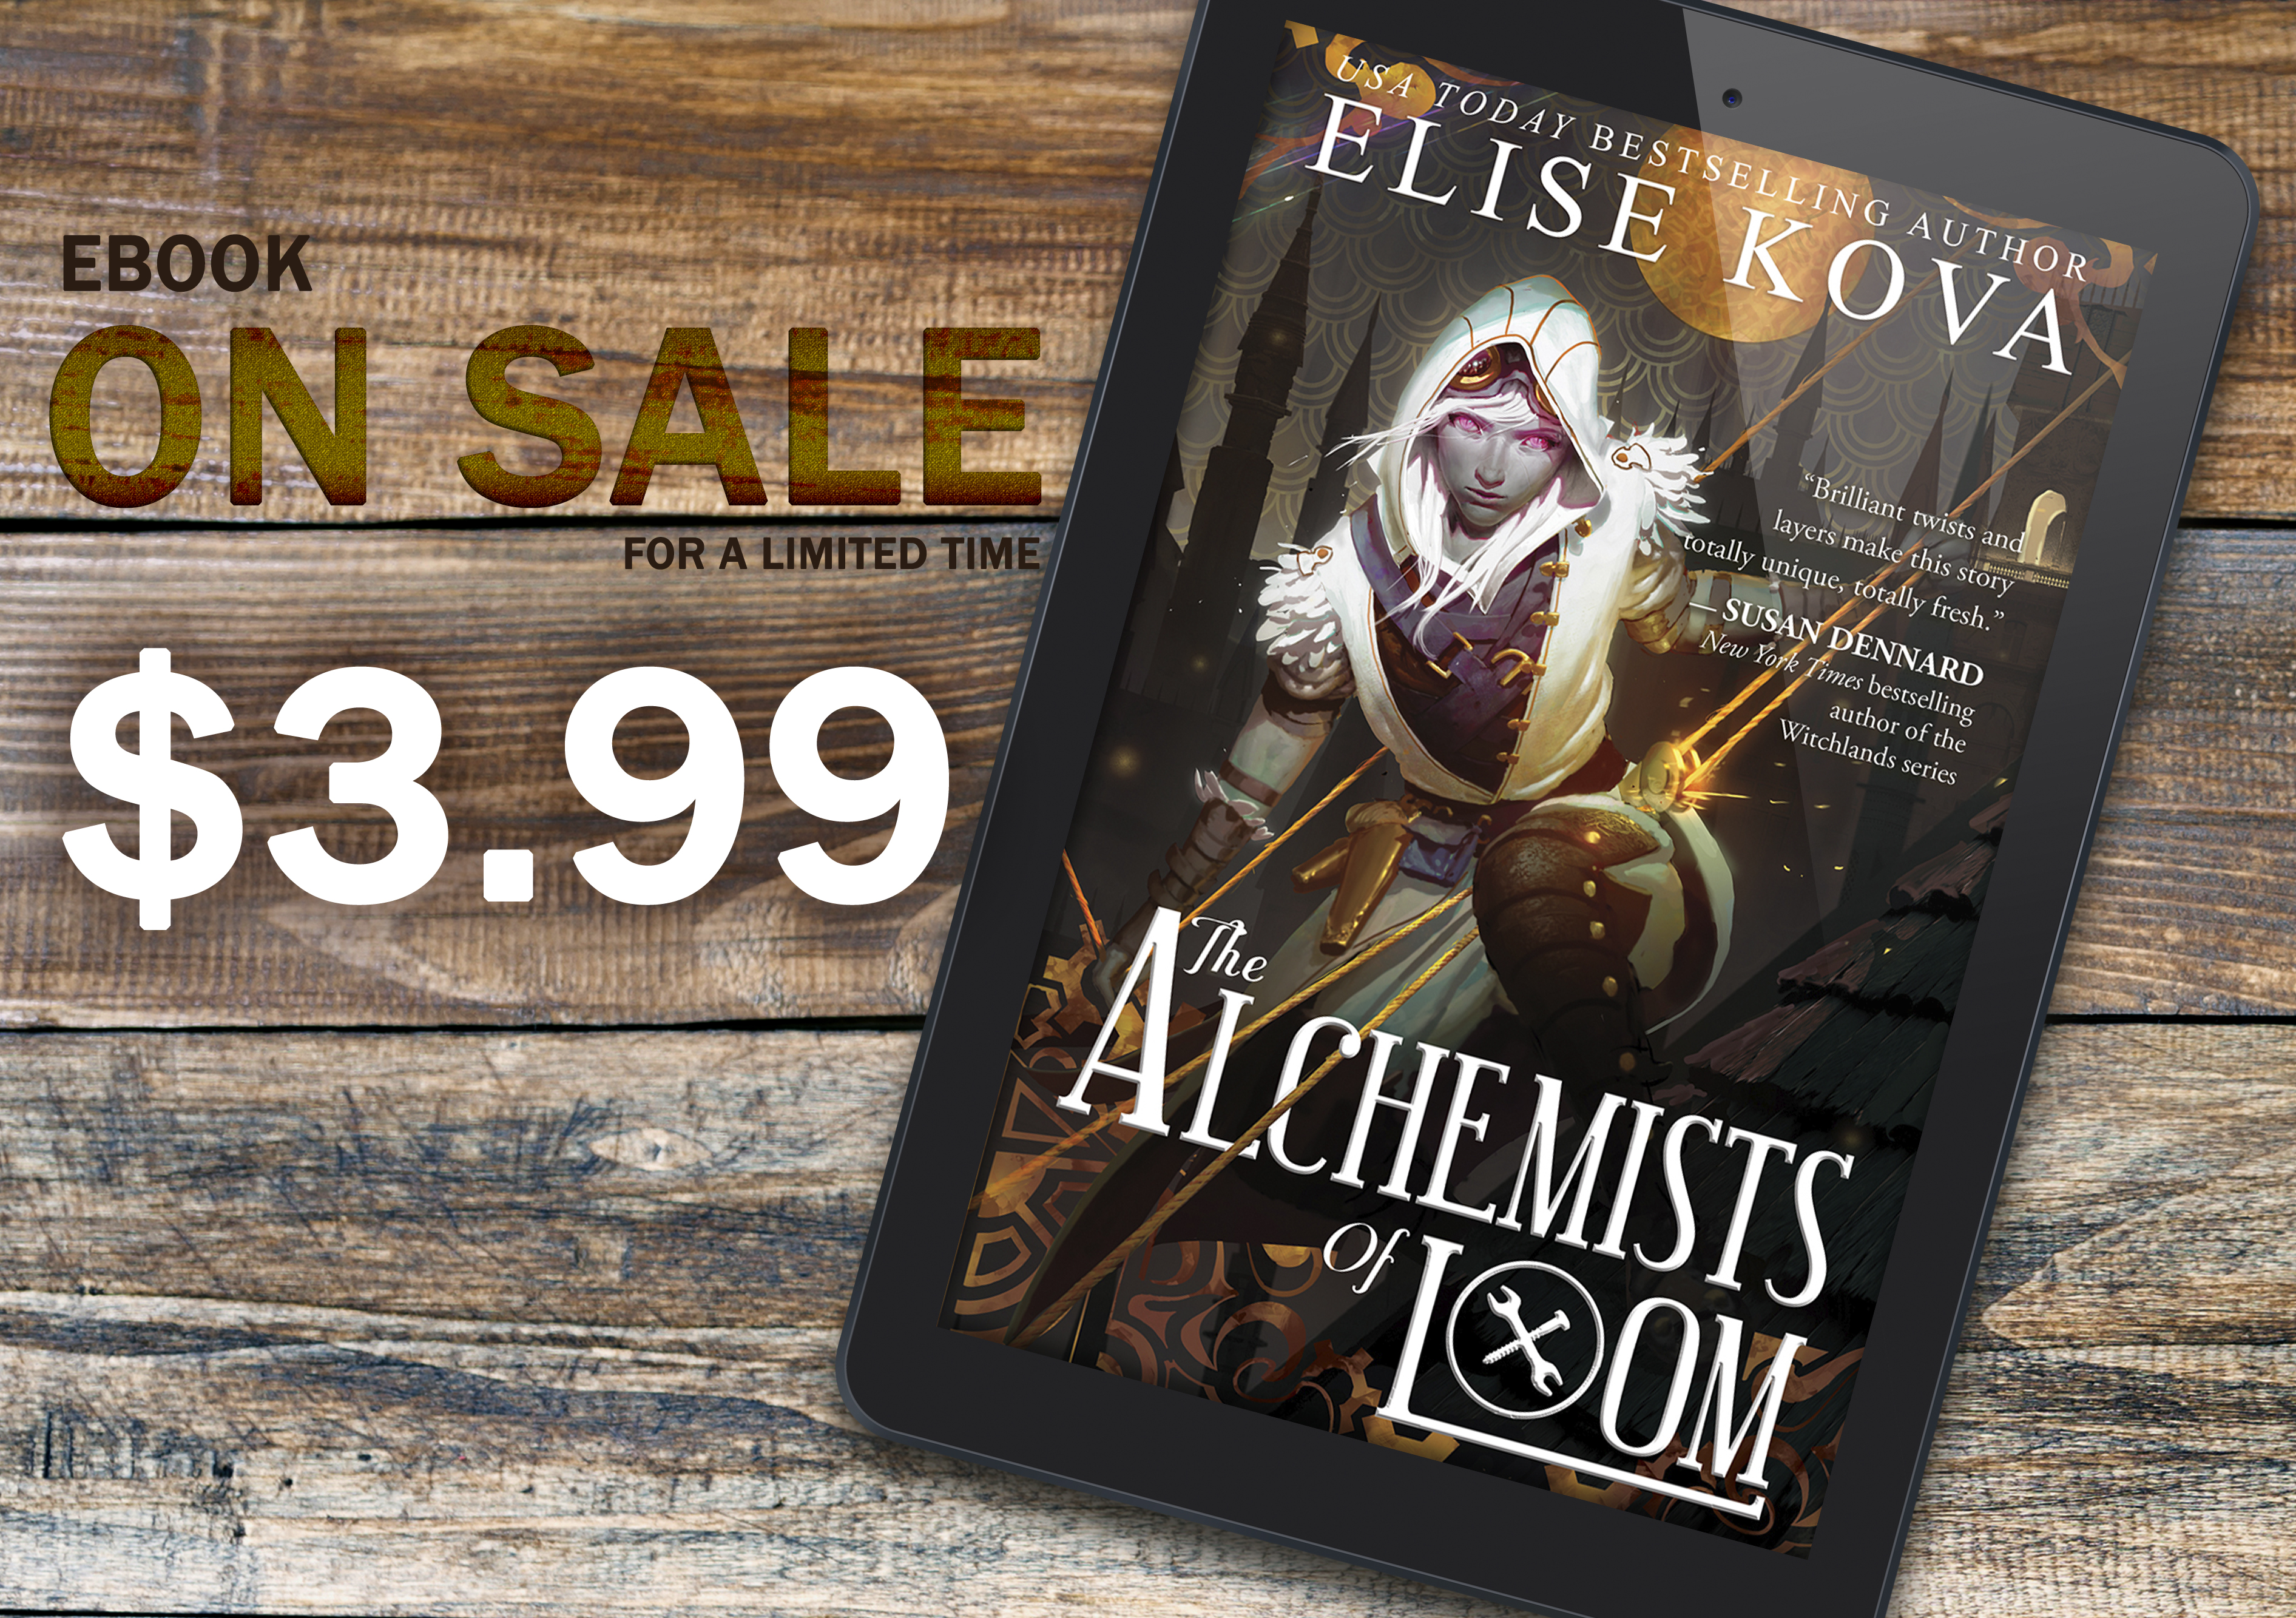 https://www.amazon.com.mx/Alchemists-Loom-Saga-Book-English-ebook/dp/B074SVYCPK/ref=sr_1_1?ie=UTF8&qid=1504891247&sr=8-1&keywords=the+alchemists+of+loom